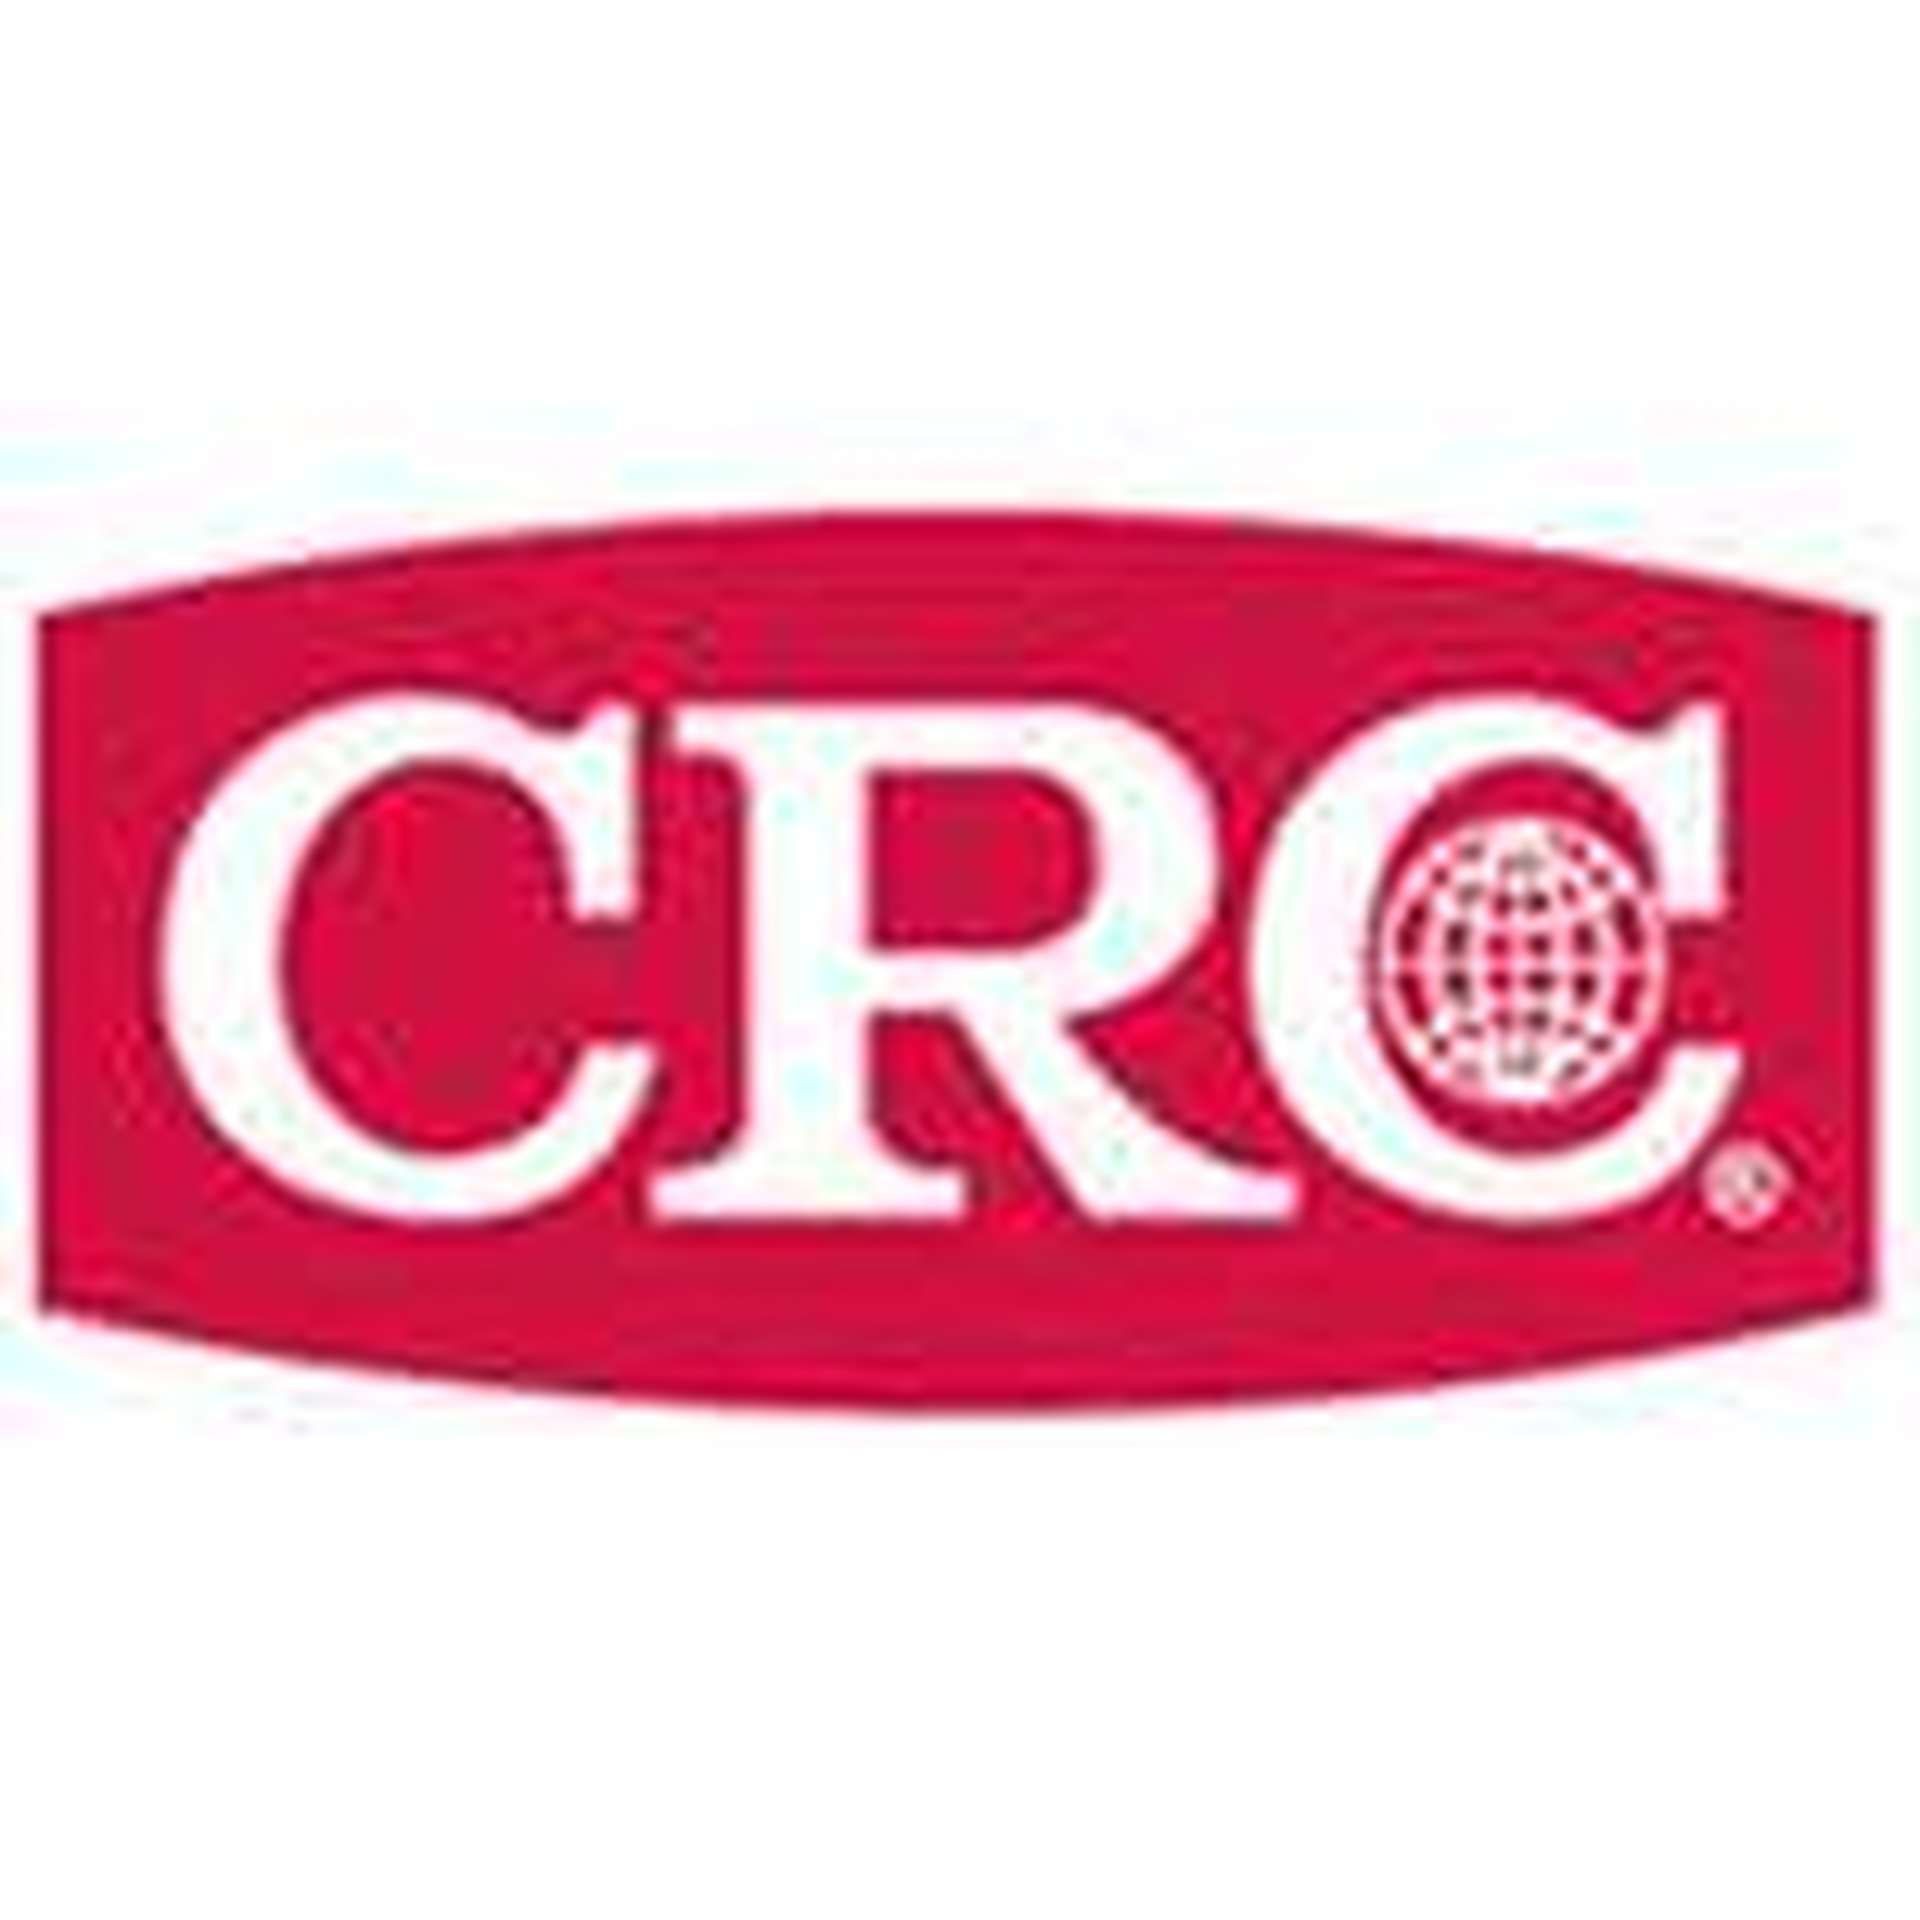 CRC HYDROFORCE CLEANERS